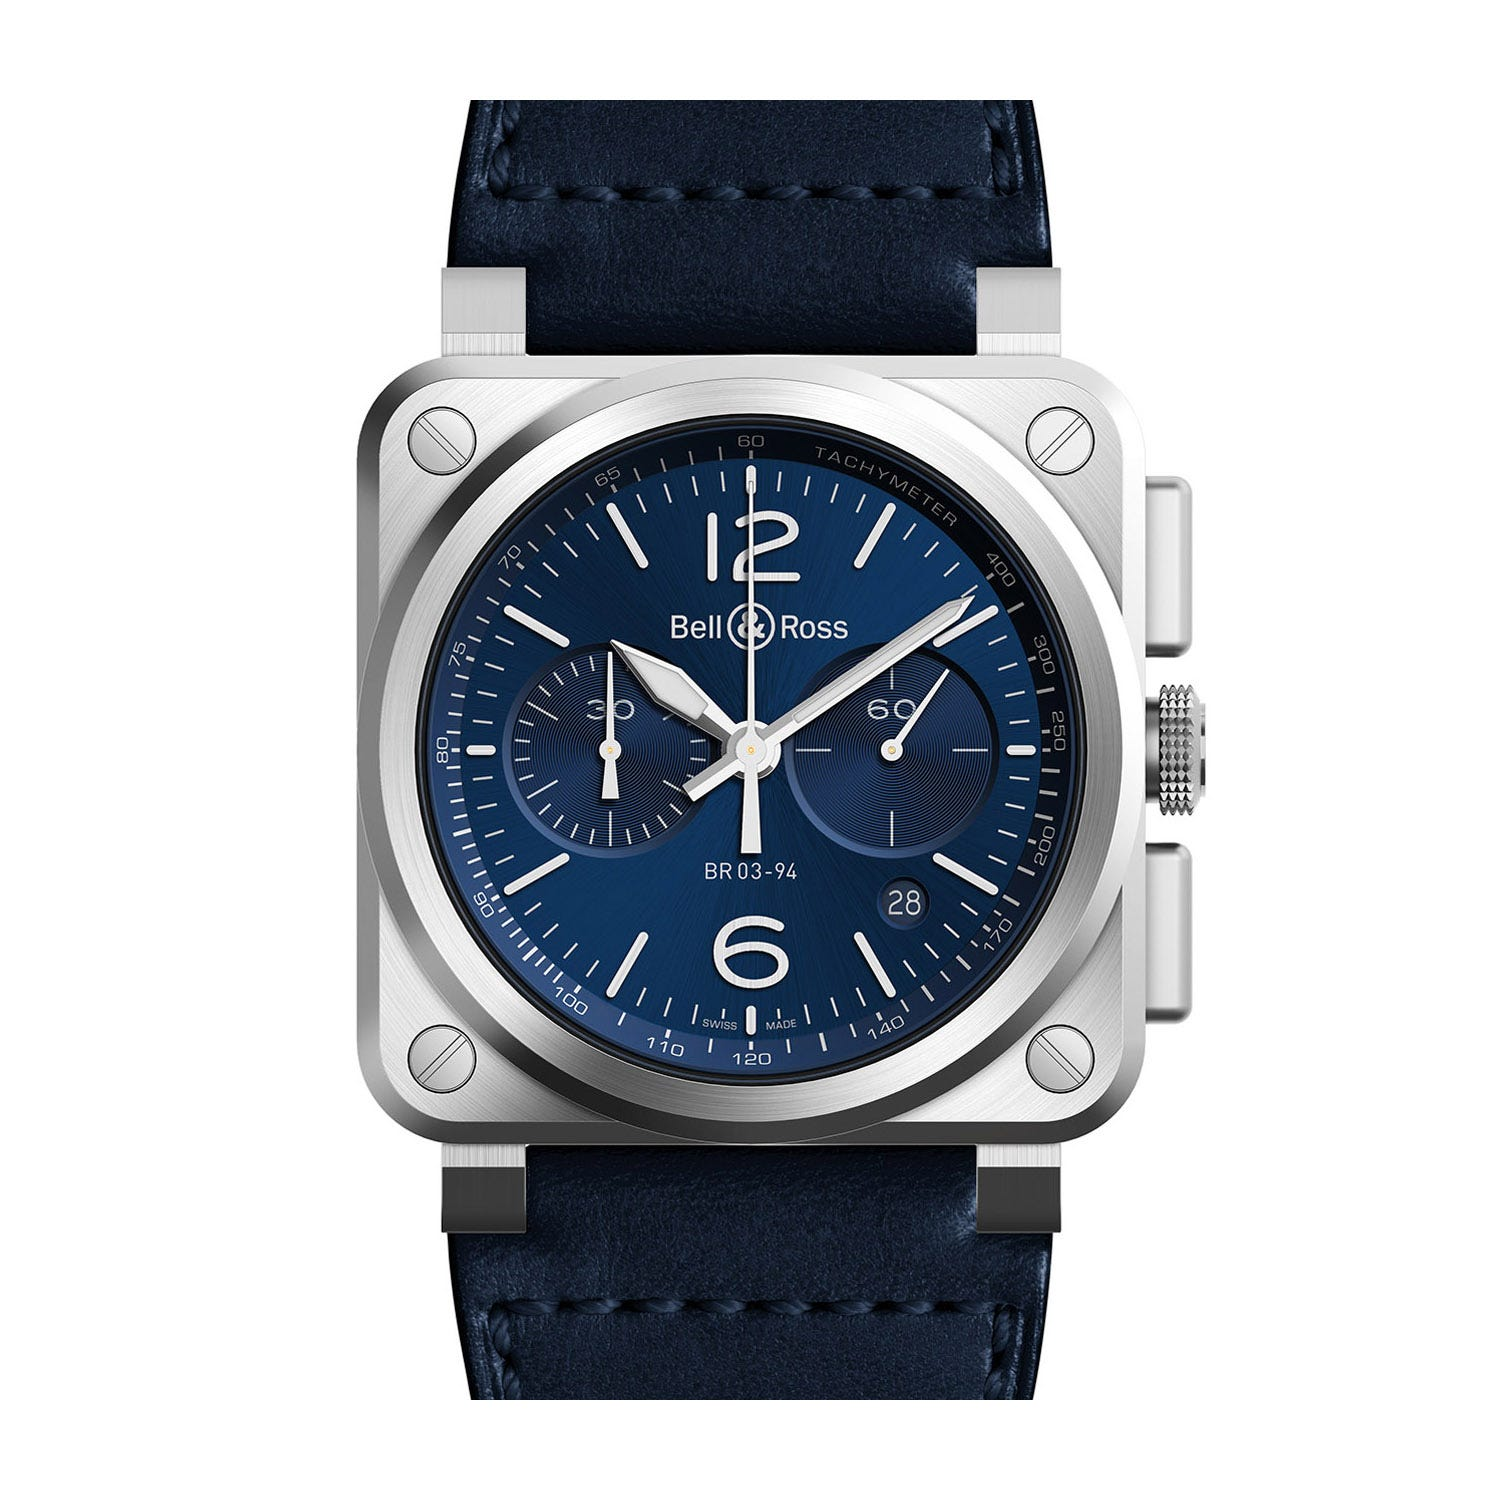 Bell & Ross Aviation Blue Dial Automatic Men's Leather Watch